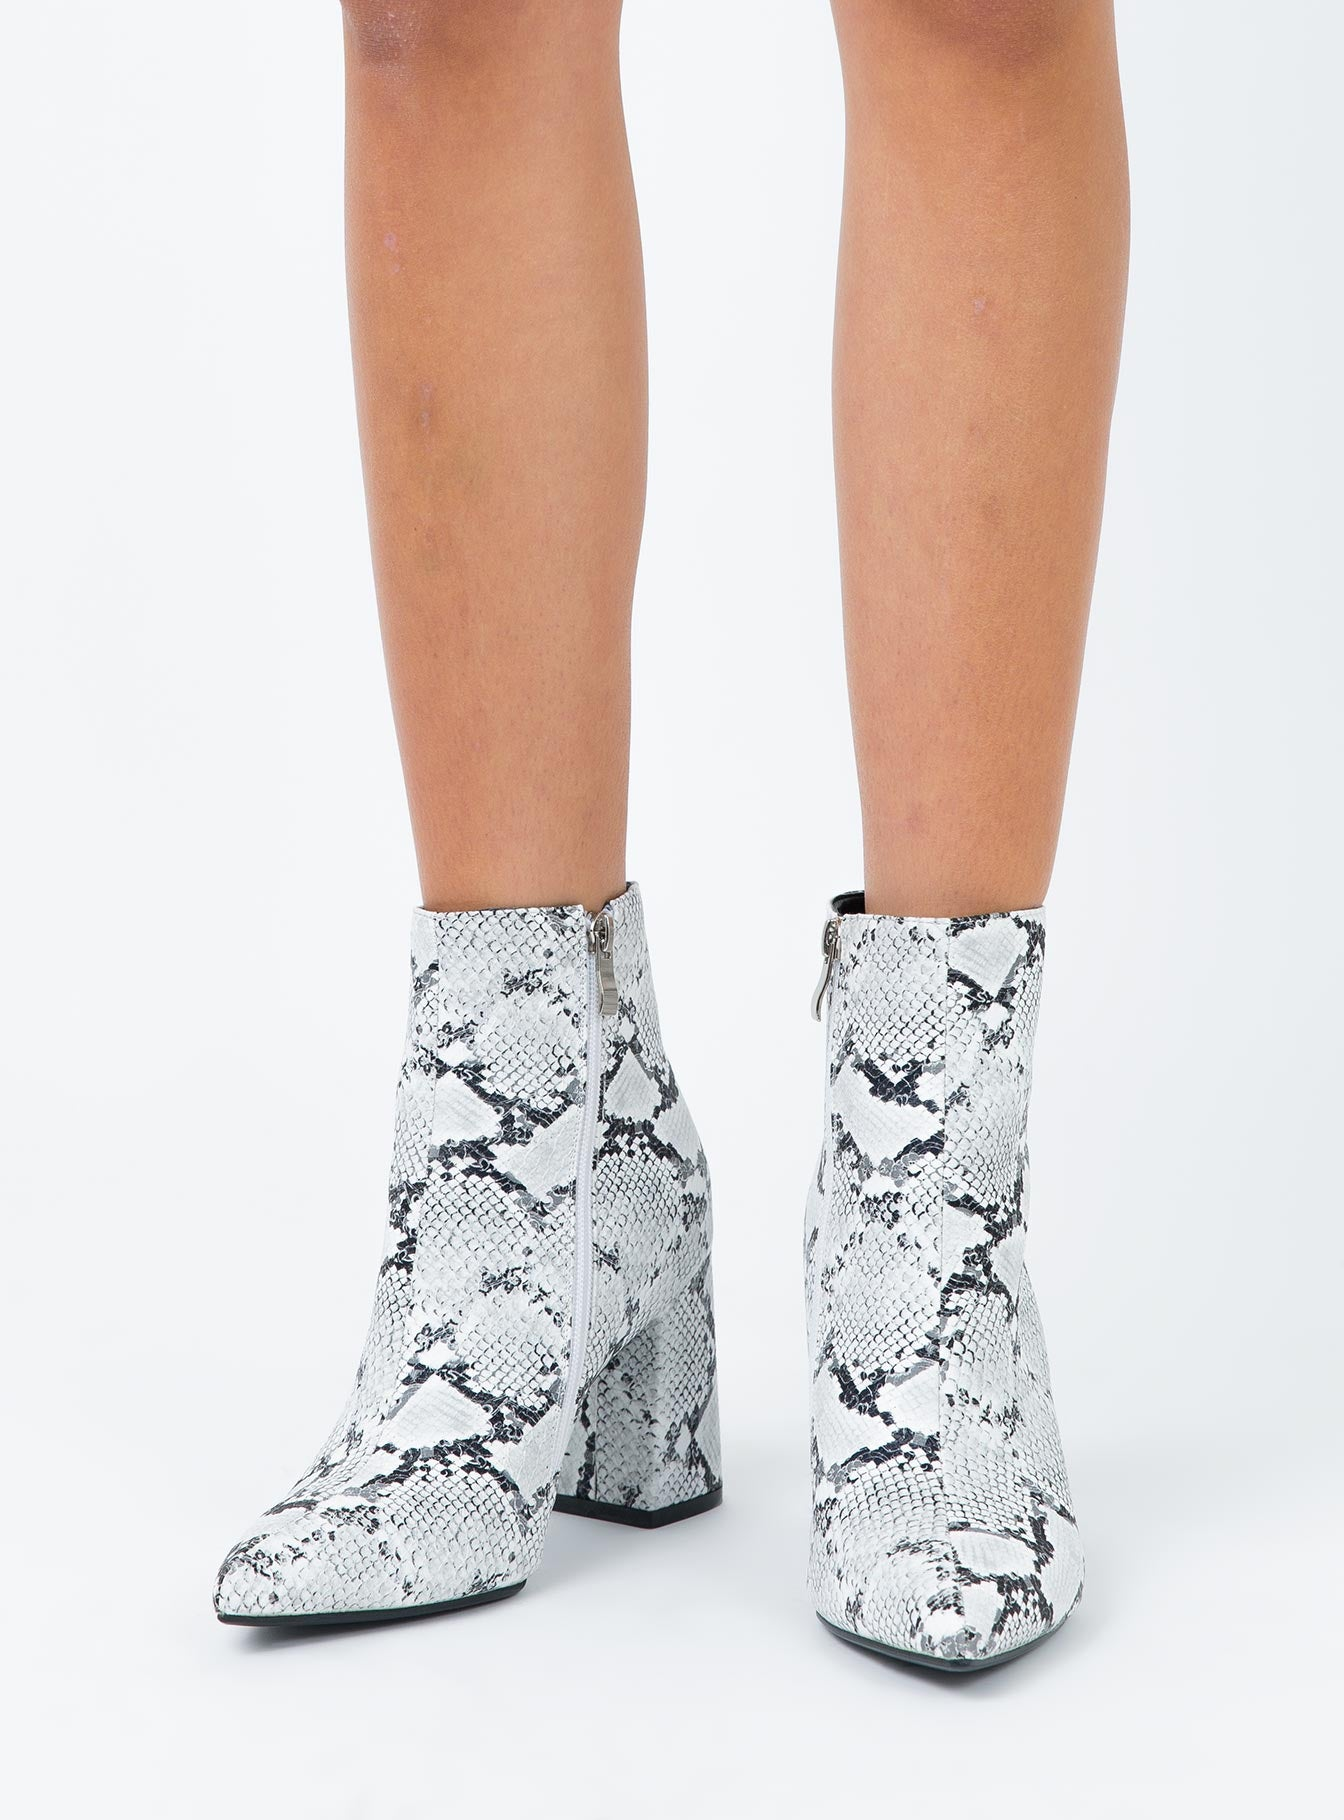 Therapy Snake Alloy Boots Black/White